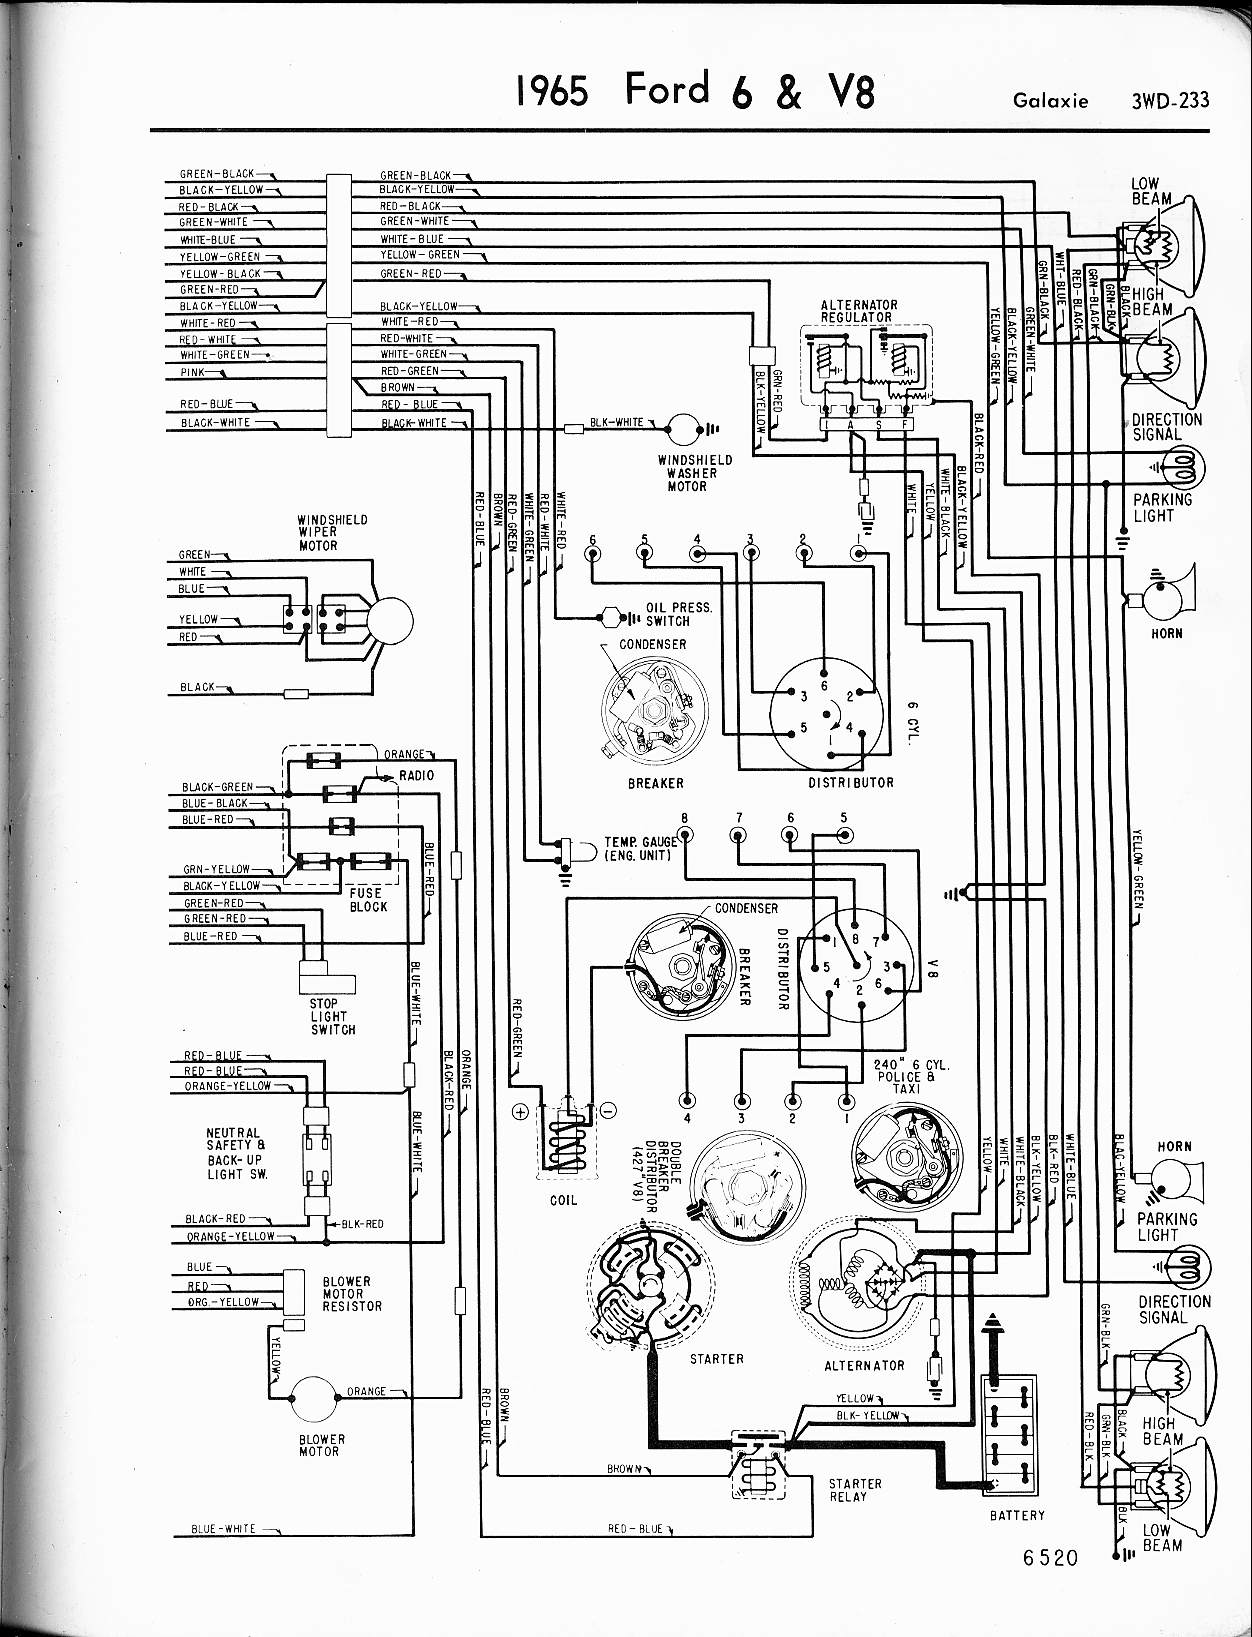 ford wiper switch wiring diagram ford image wiring 66 two speed wiper switch fordforumsonline com on ford wiper switch wiring diagram